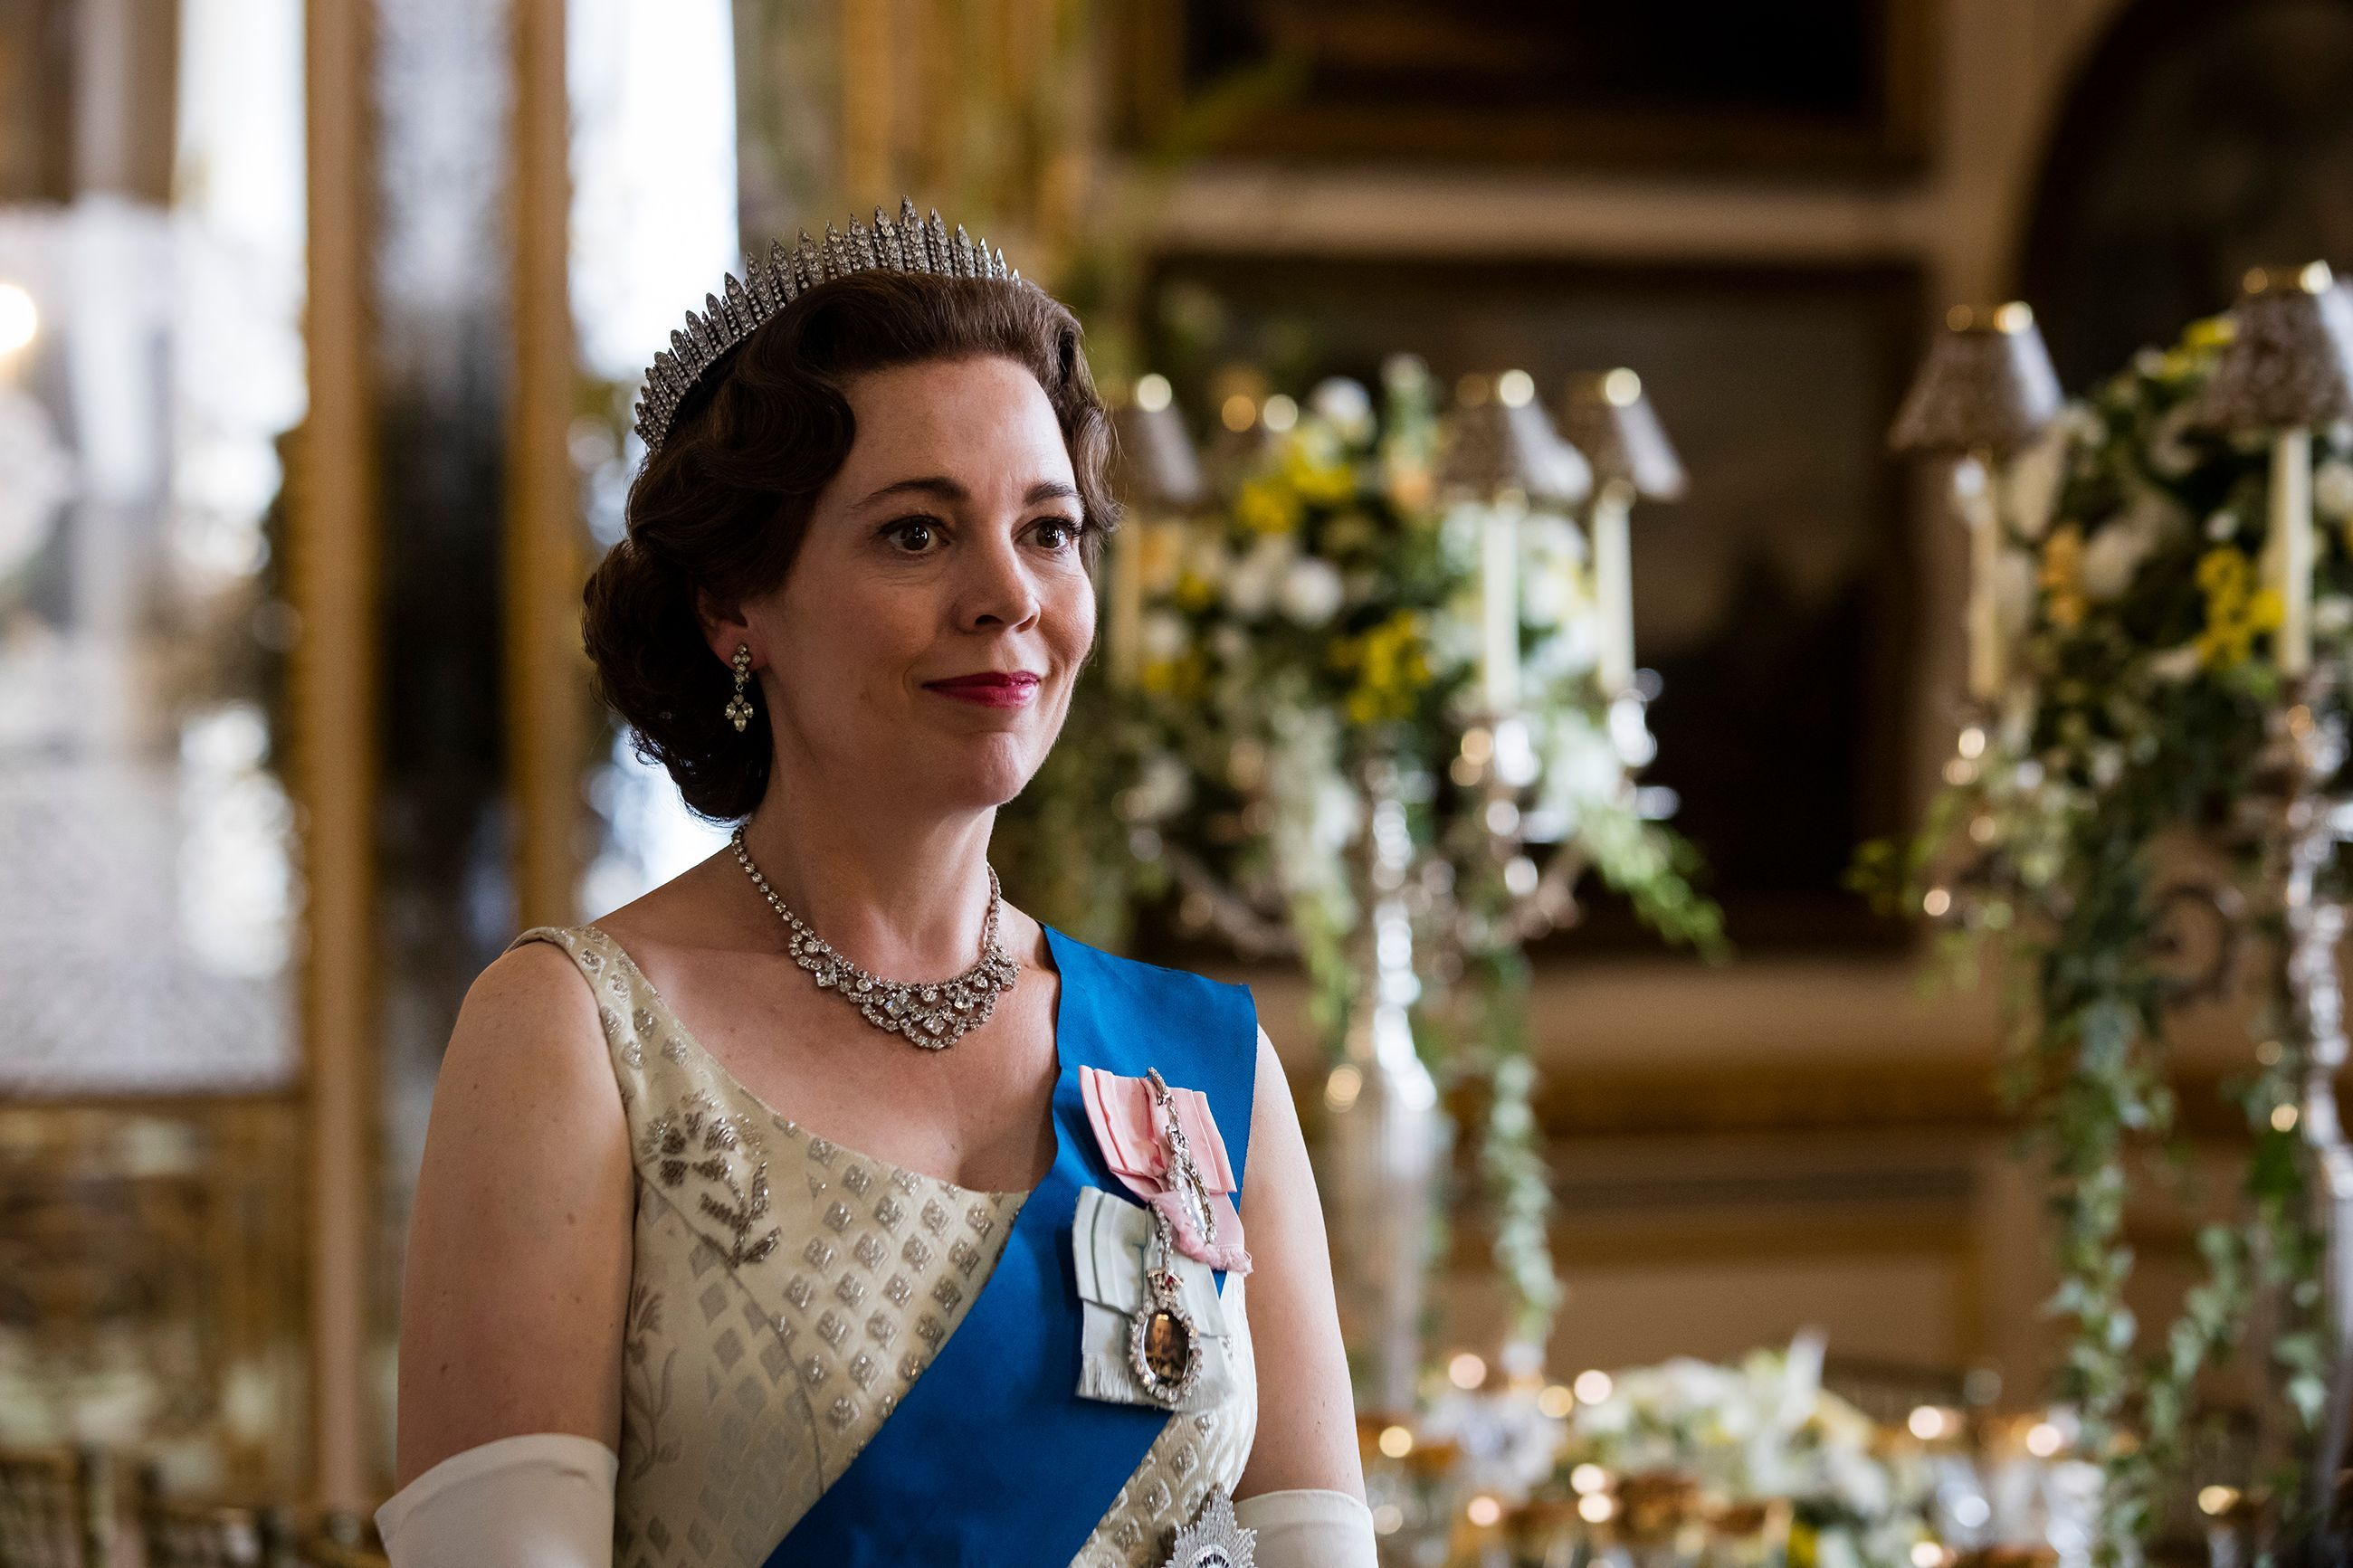 Who Is Olivia Colman Star Of The Favourite Broadchurch And The